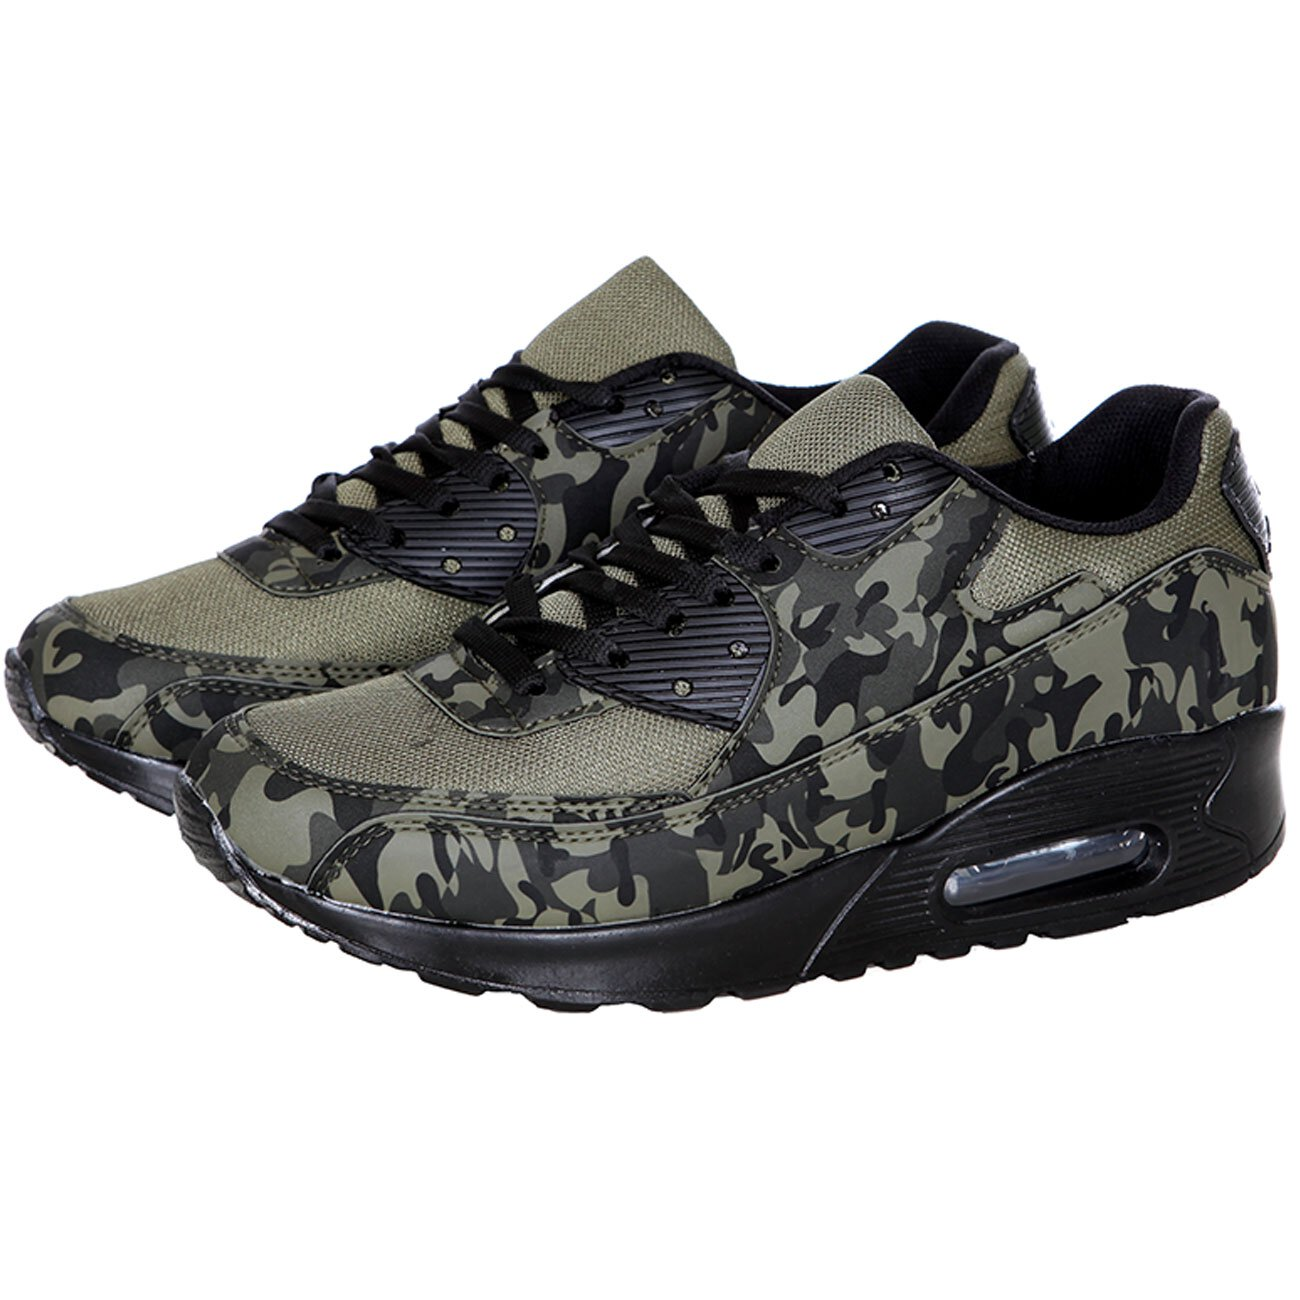 camouflage sneaker herren schuhe schn rer sport freizeit. Black Bedroom Furniture Sets. Home Design Ideas